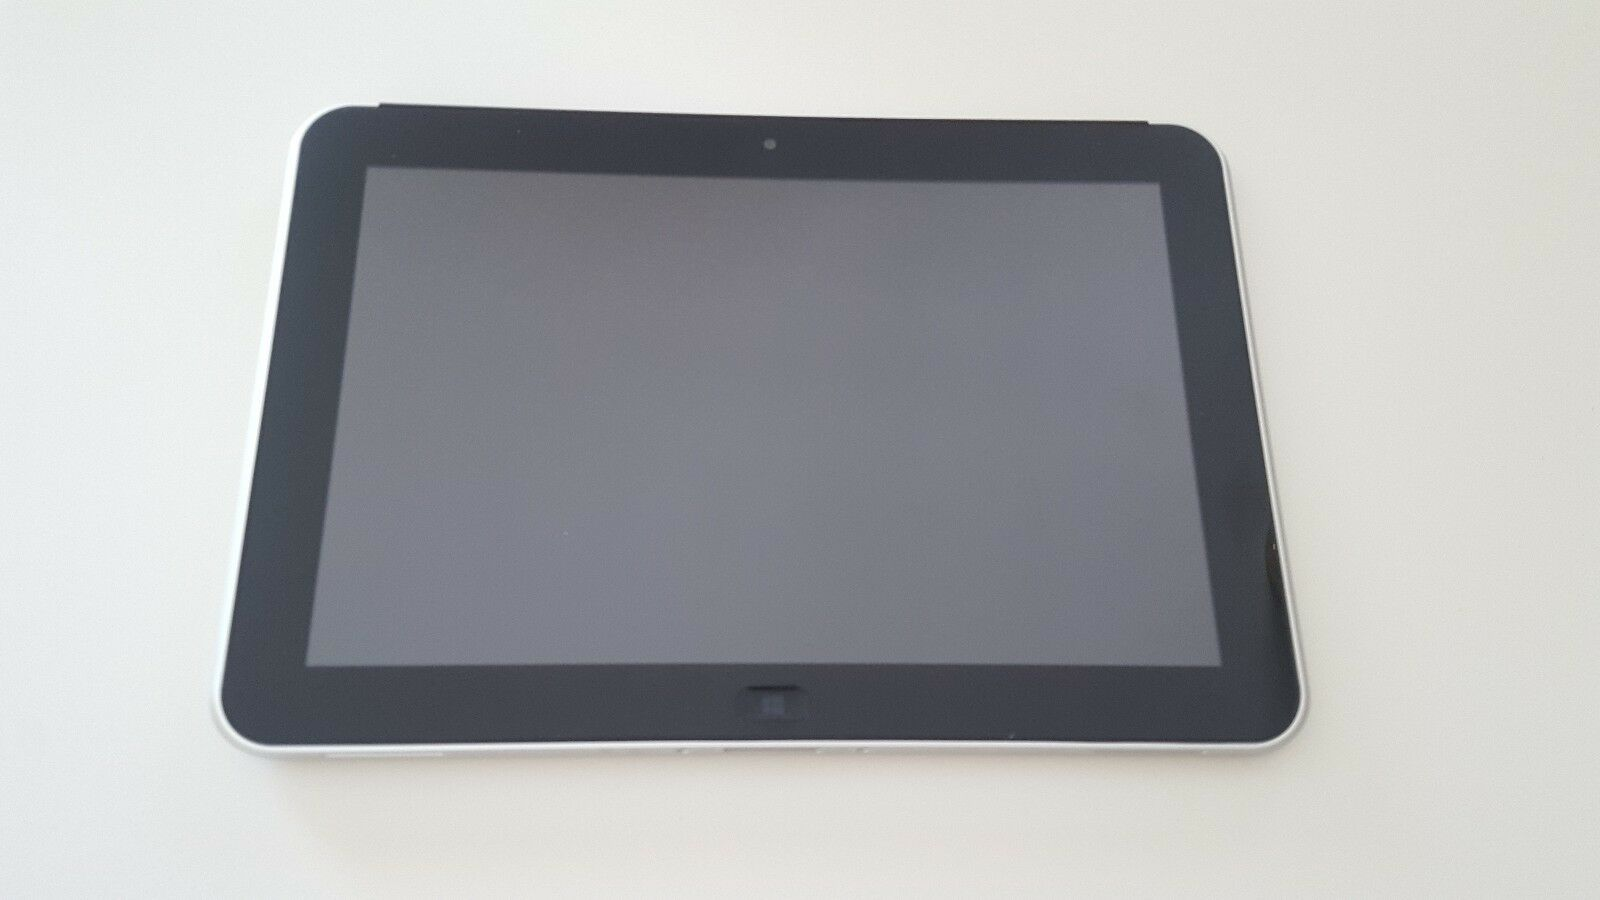 HP ElitePad 900 Windows 10 Tablet, 64GB, Wi-Fi, 10.1in - Black